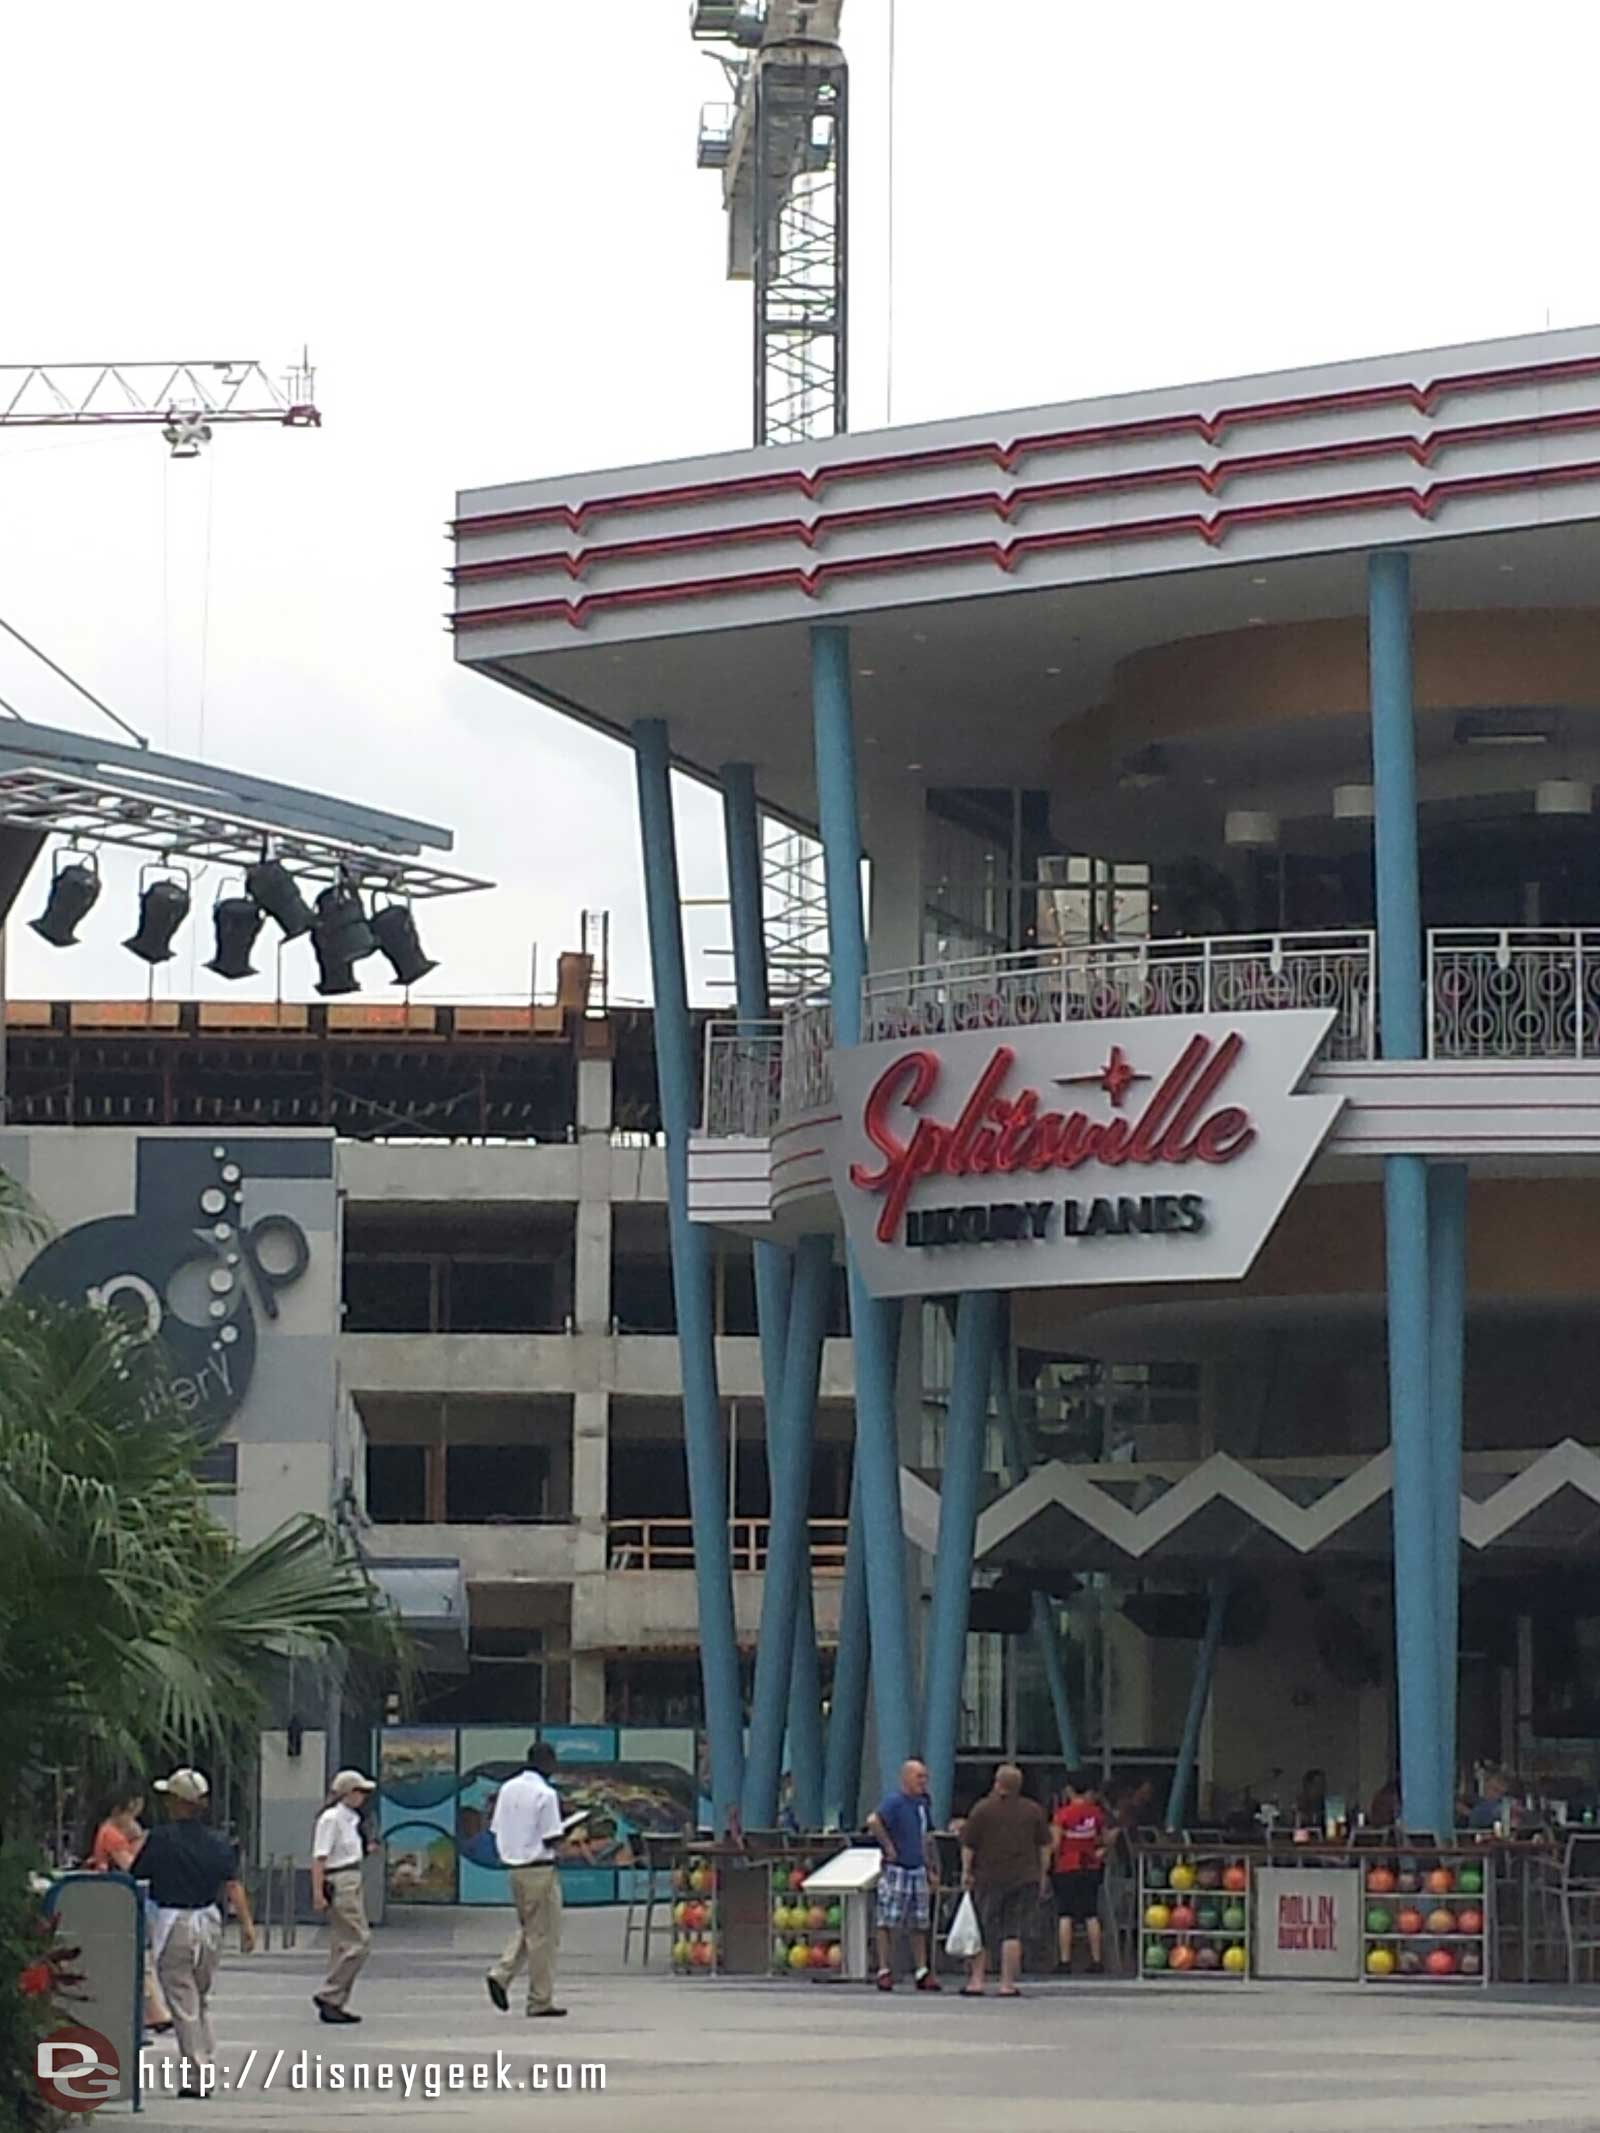 The new Disney Springs parking structure rising behind Splitsville, looks like 5th story going up.